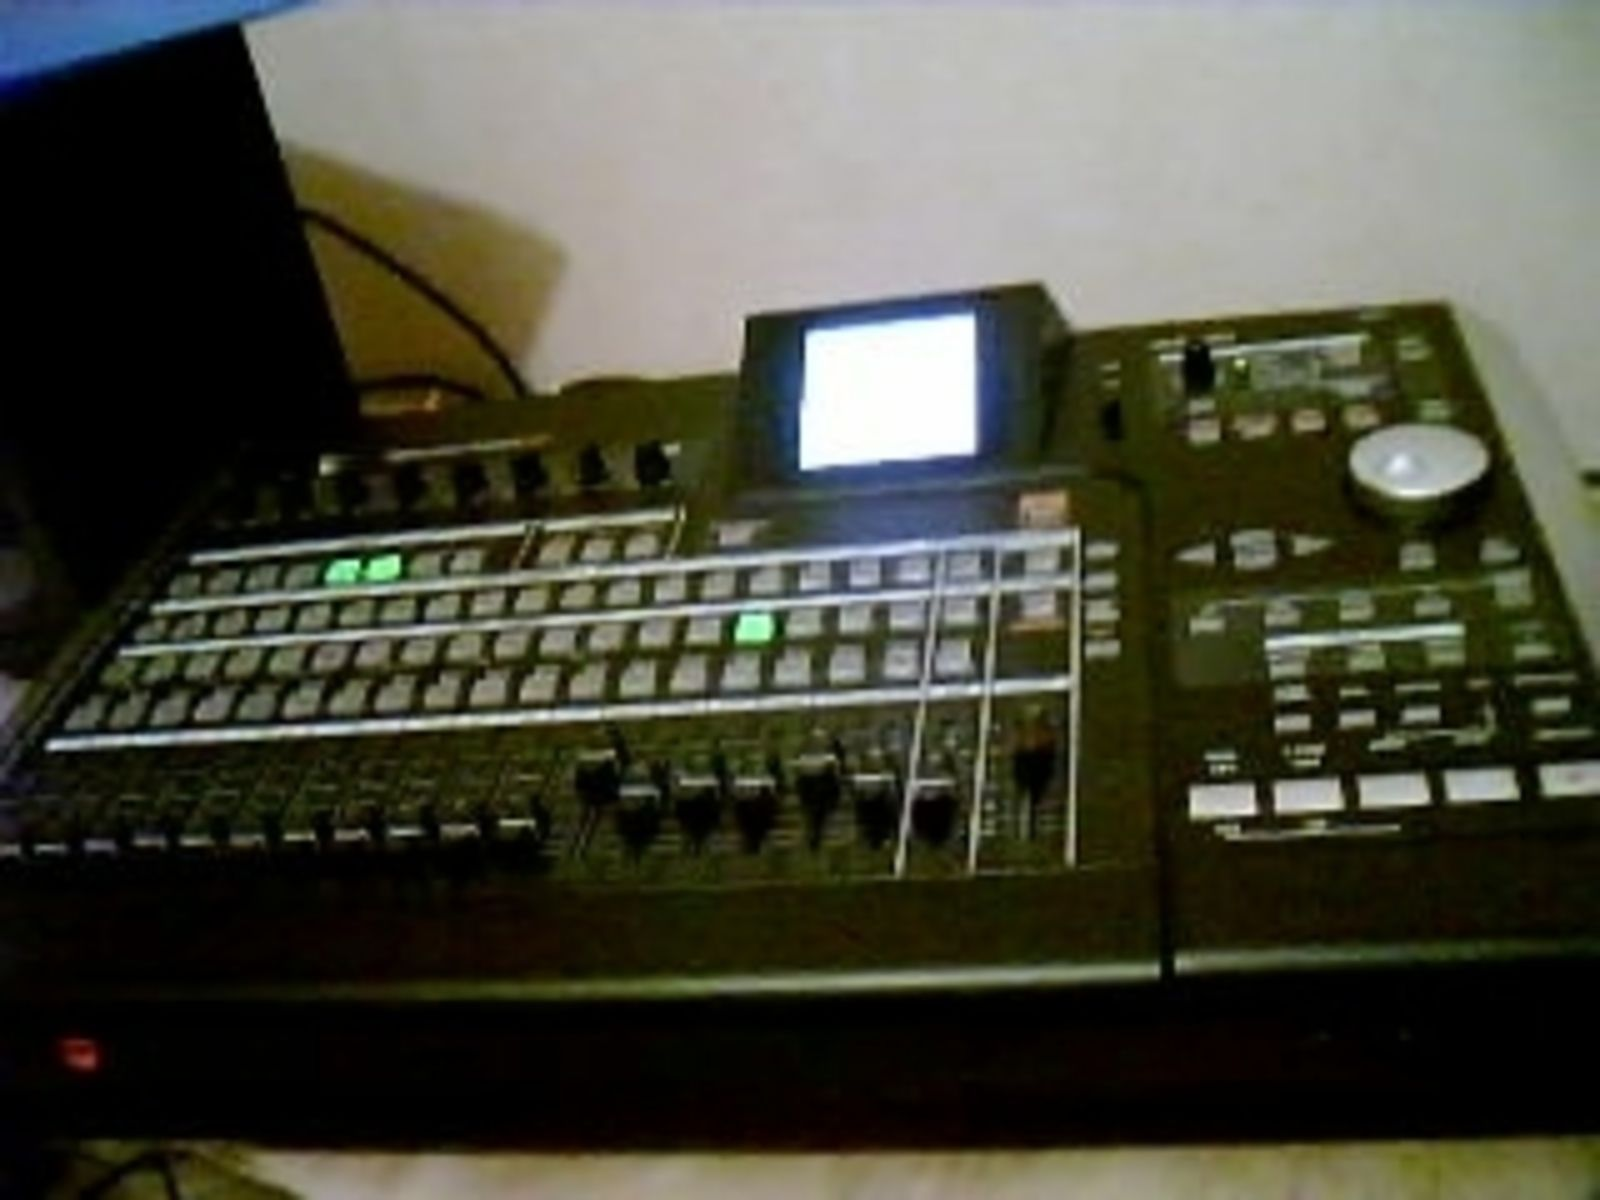 Music mixer tascam 2488neo users manual